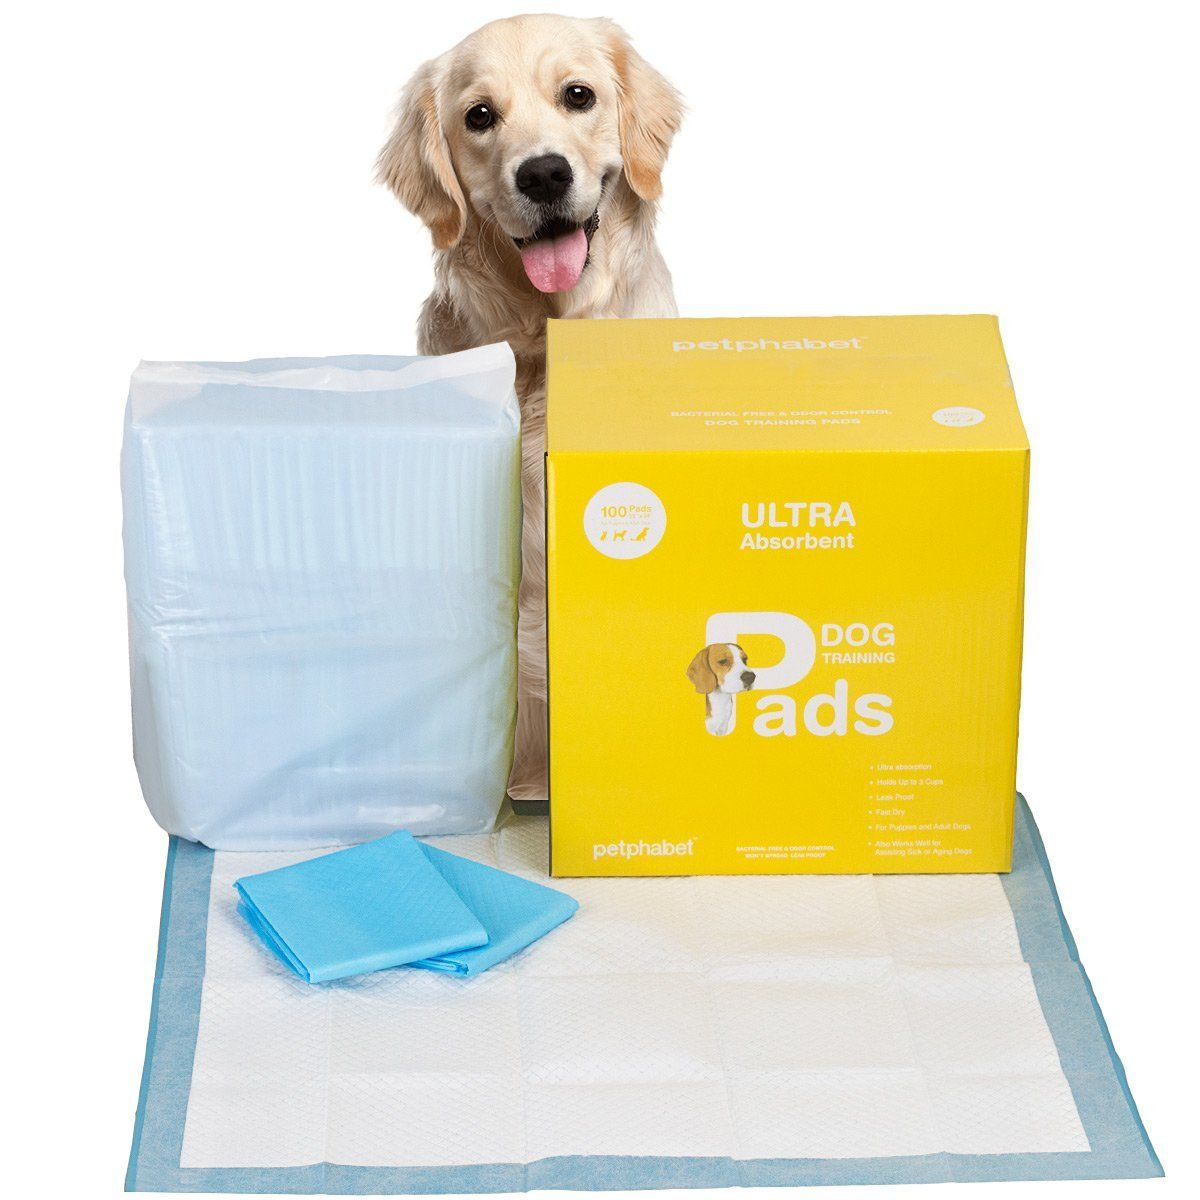 Free Puppy Pad Sample Puppy Pads Puppy Training Puppy Pads